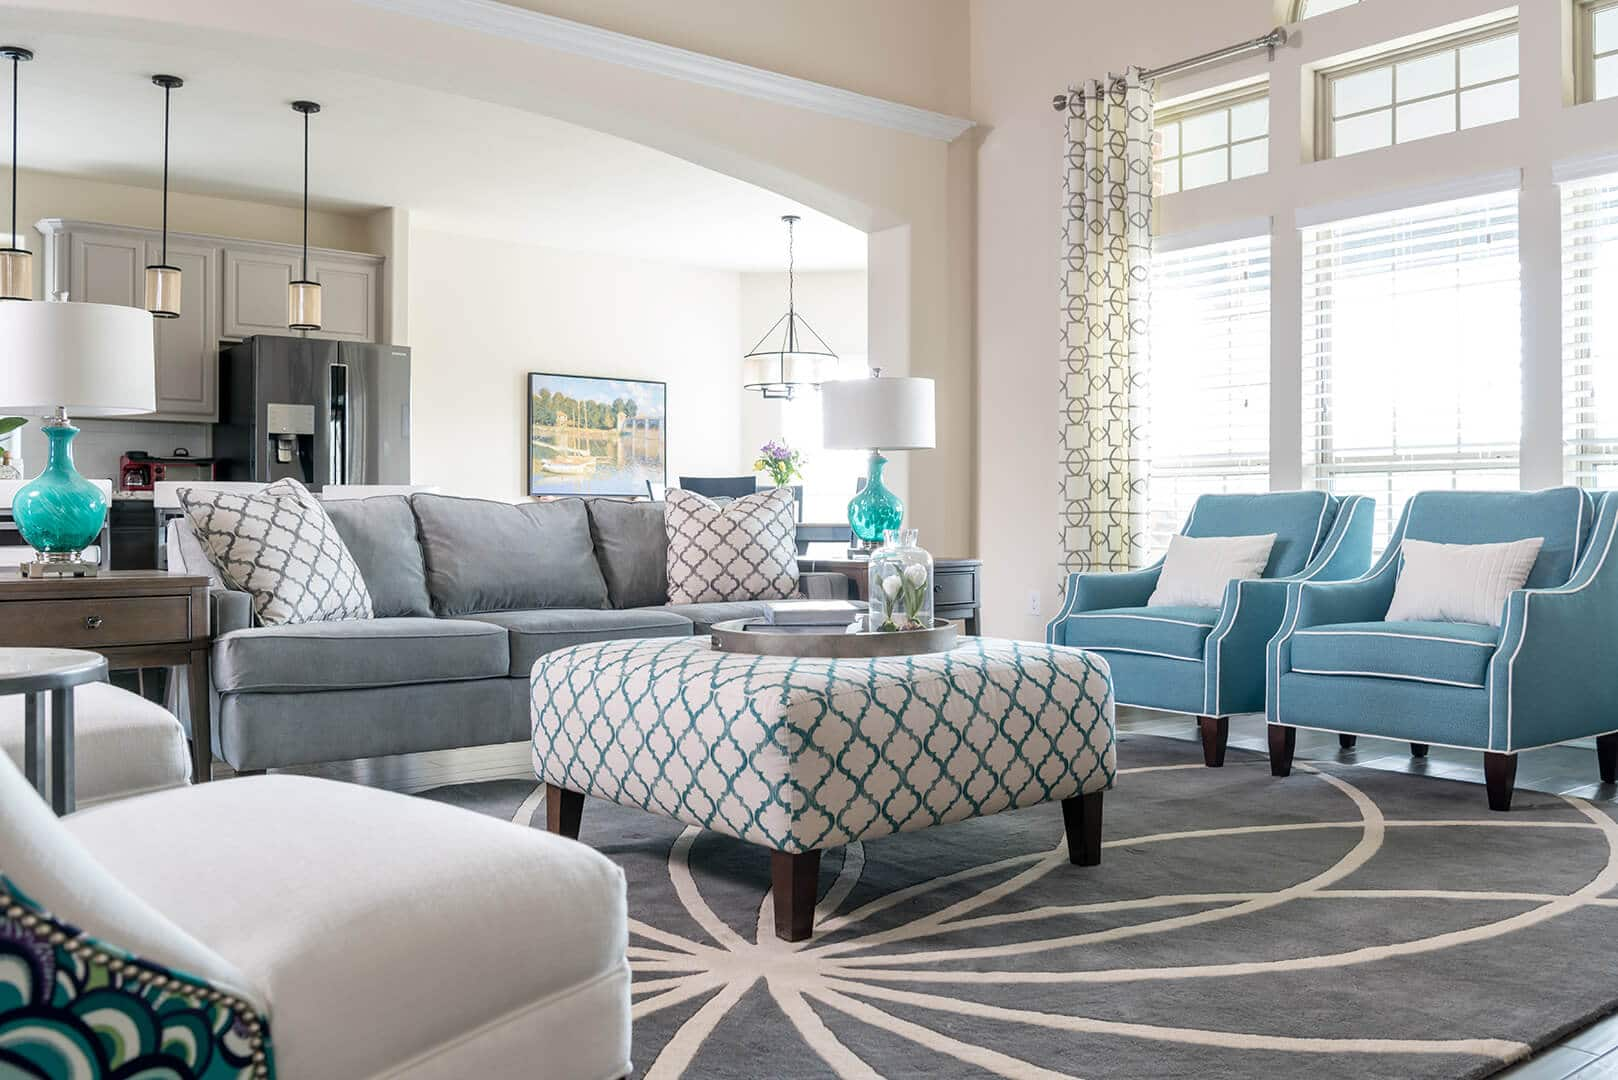 Dallas Interior Design Firms Blue & Gray Family Room Decorating Ideas with star patterned rug by Dee Frazier Interiors Decorating Den Interiors the best Dallas Interior Designer